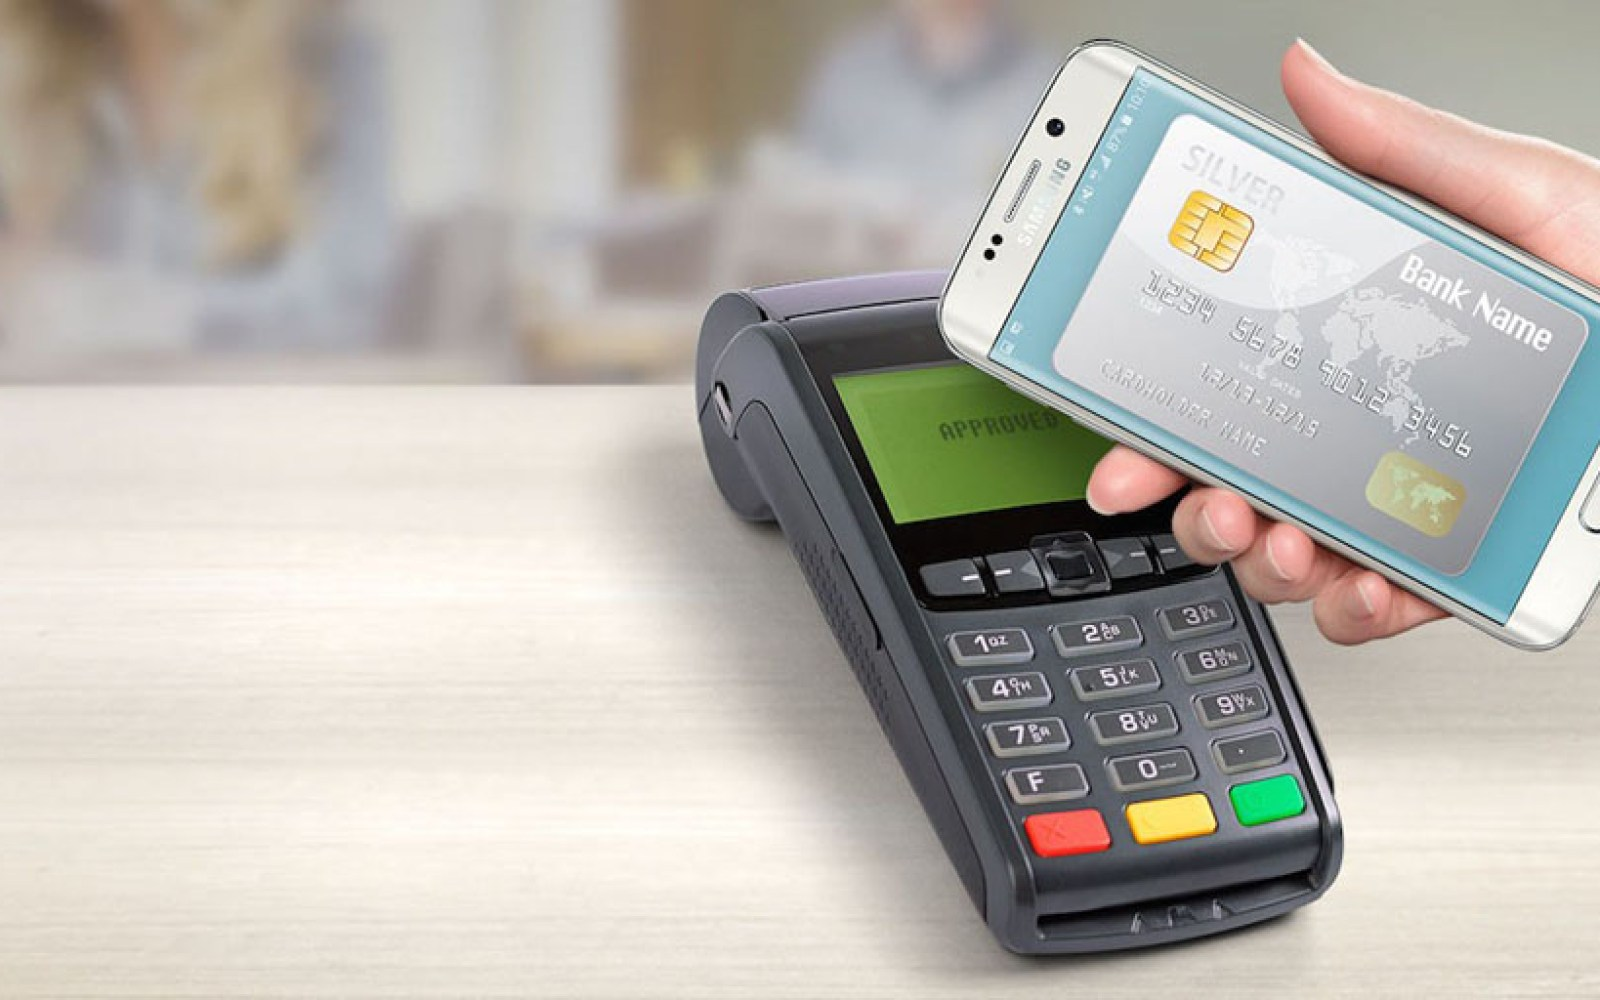 Samsung Pay finally available to Verizon users with a Galaxy S6/edge/edge+ or Note 5